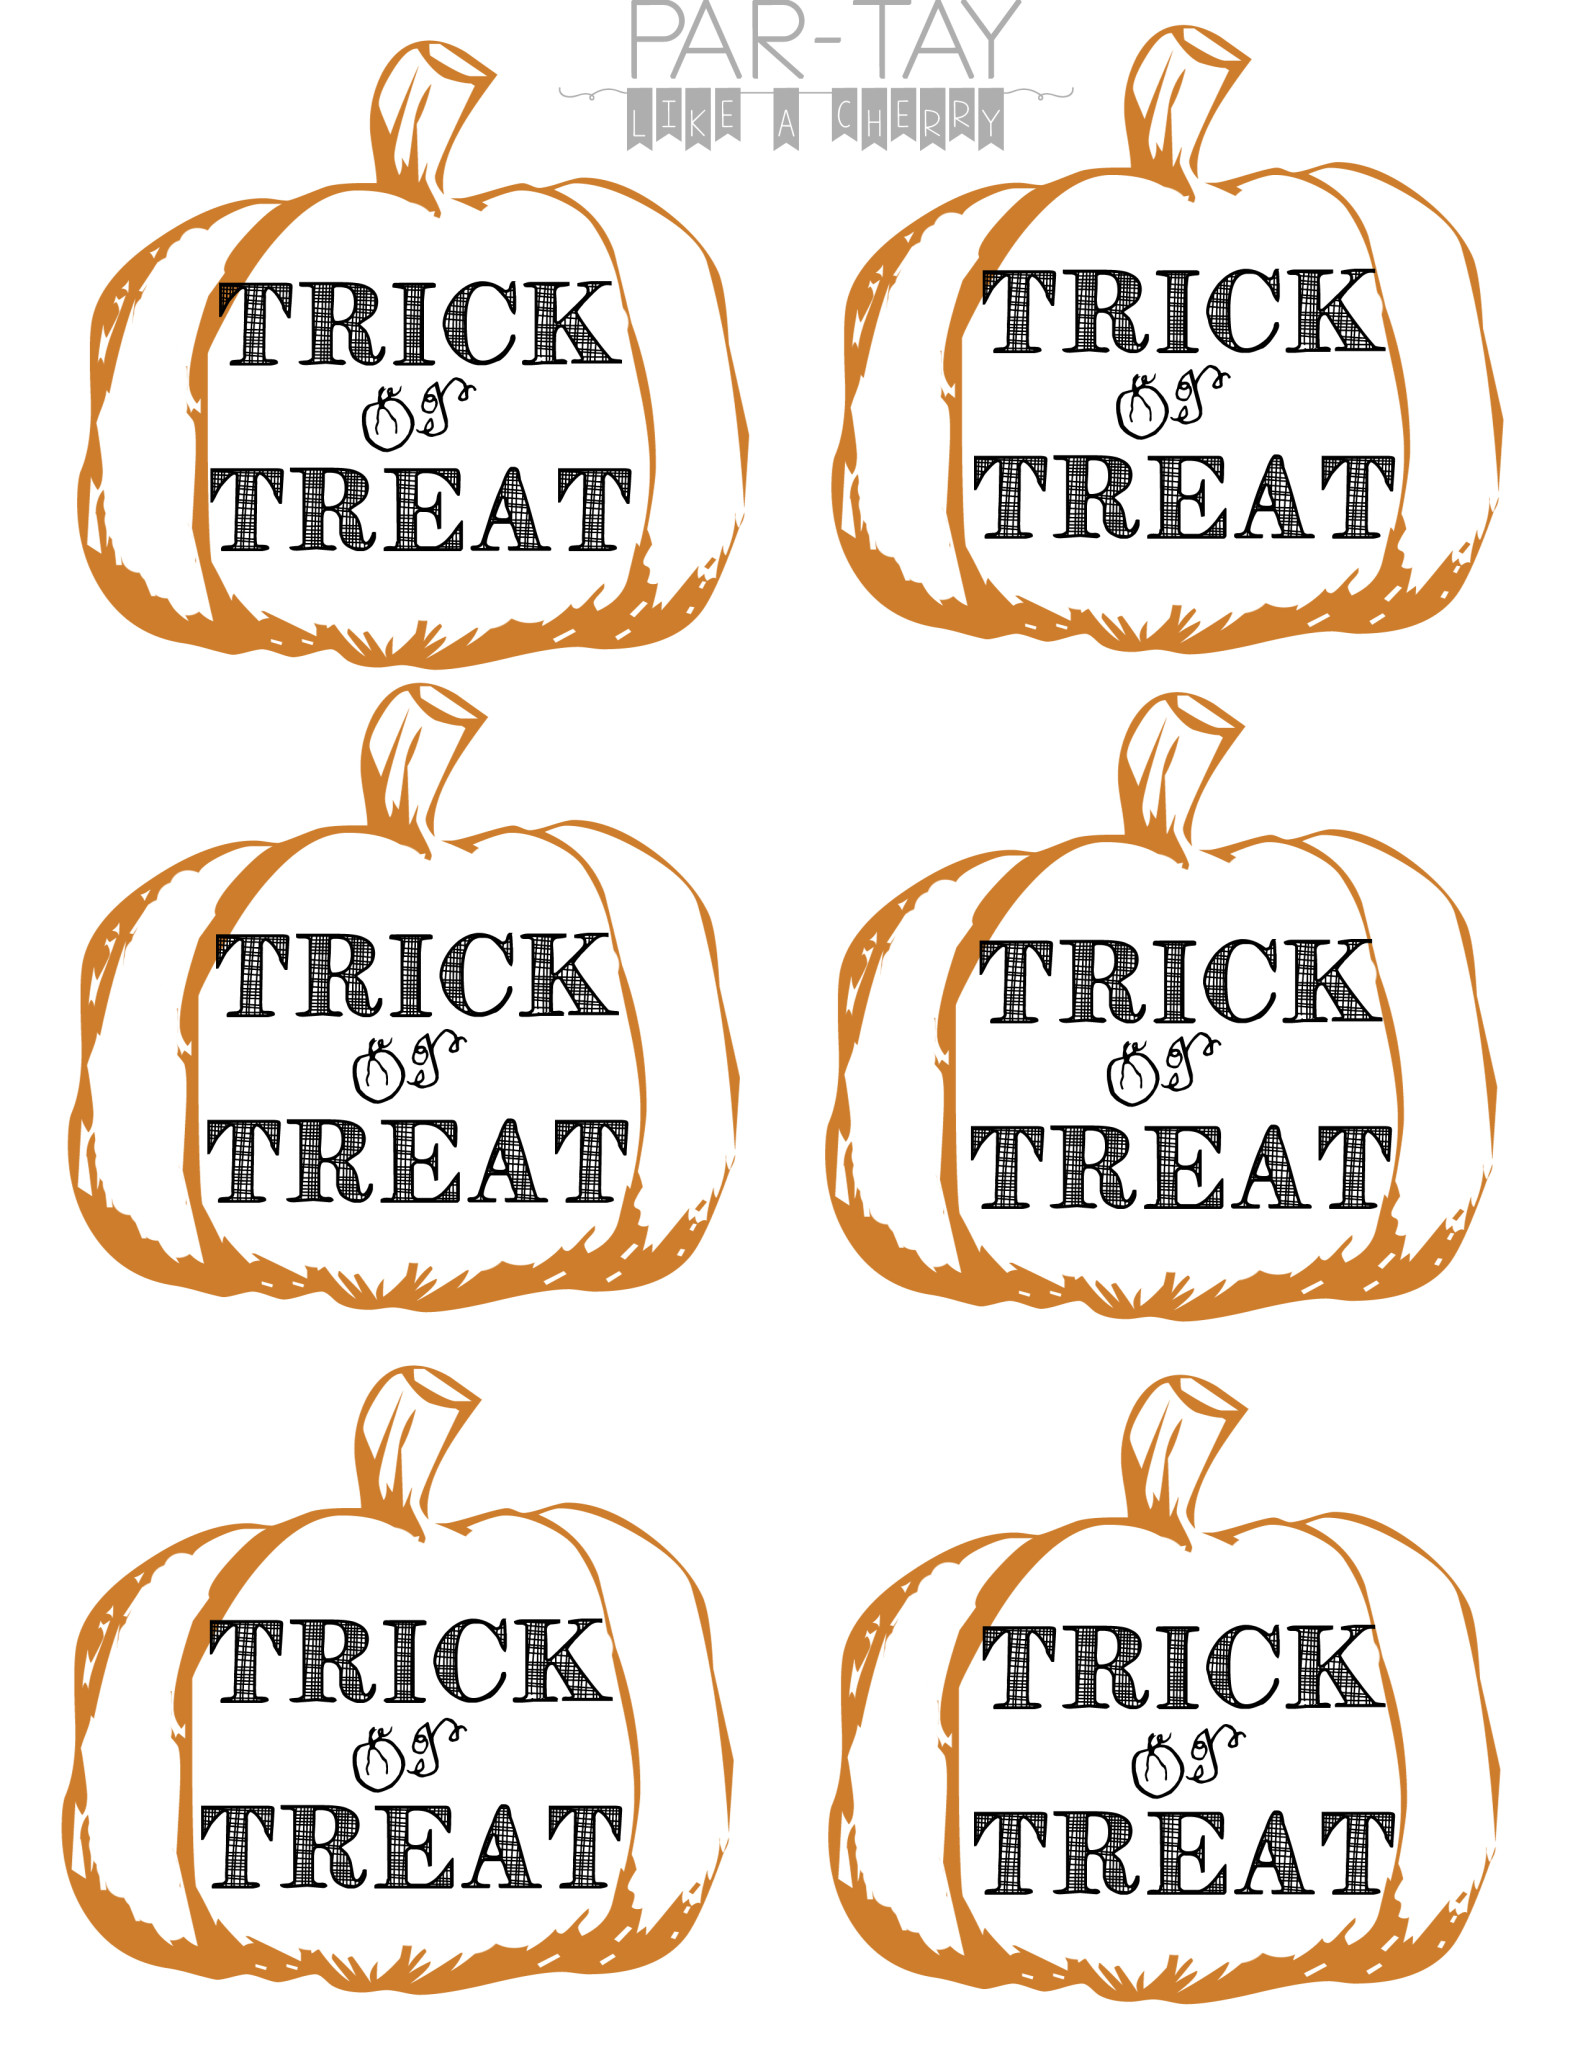 photo regarding Printable Halloween Tags called Pumpkin Tags Free of charge Printable - Celebration Together with a Cherry